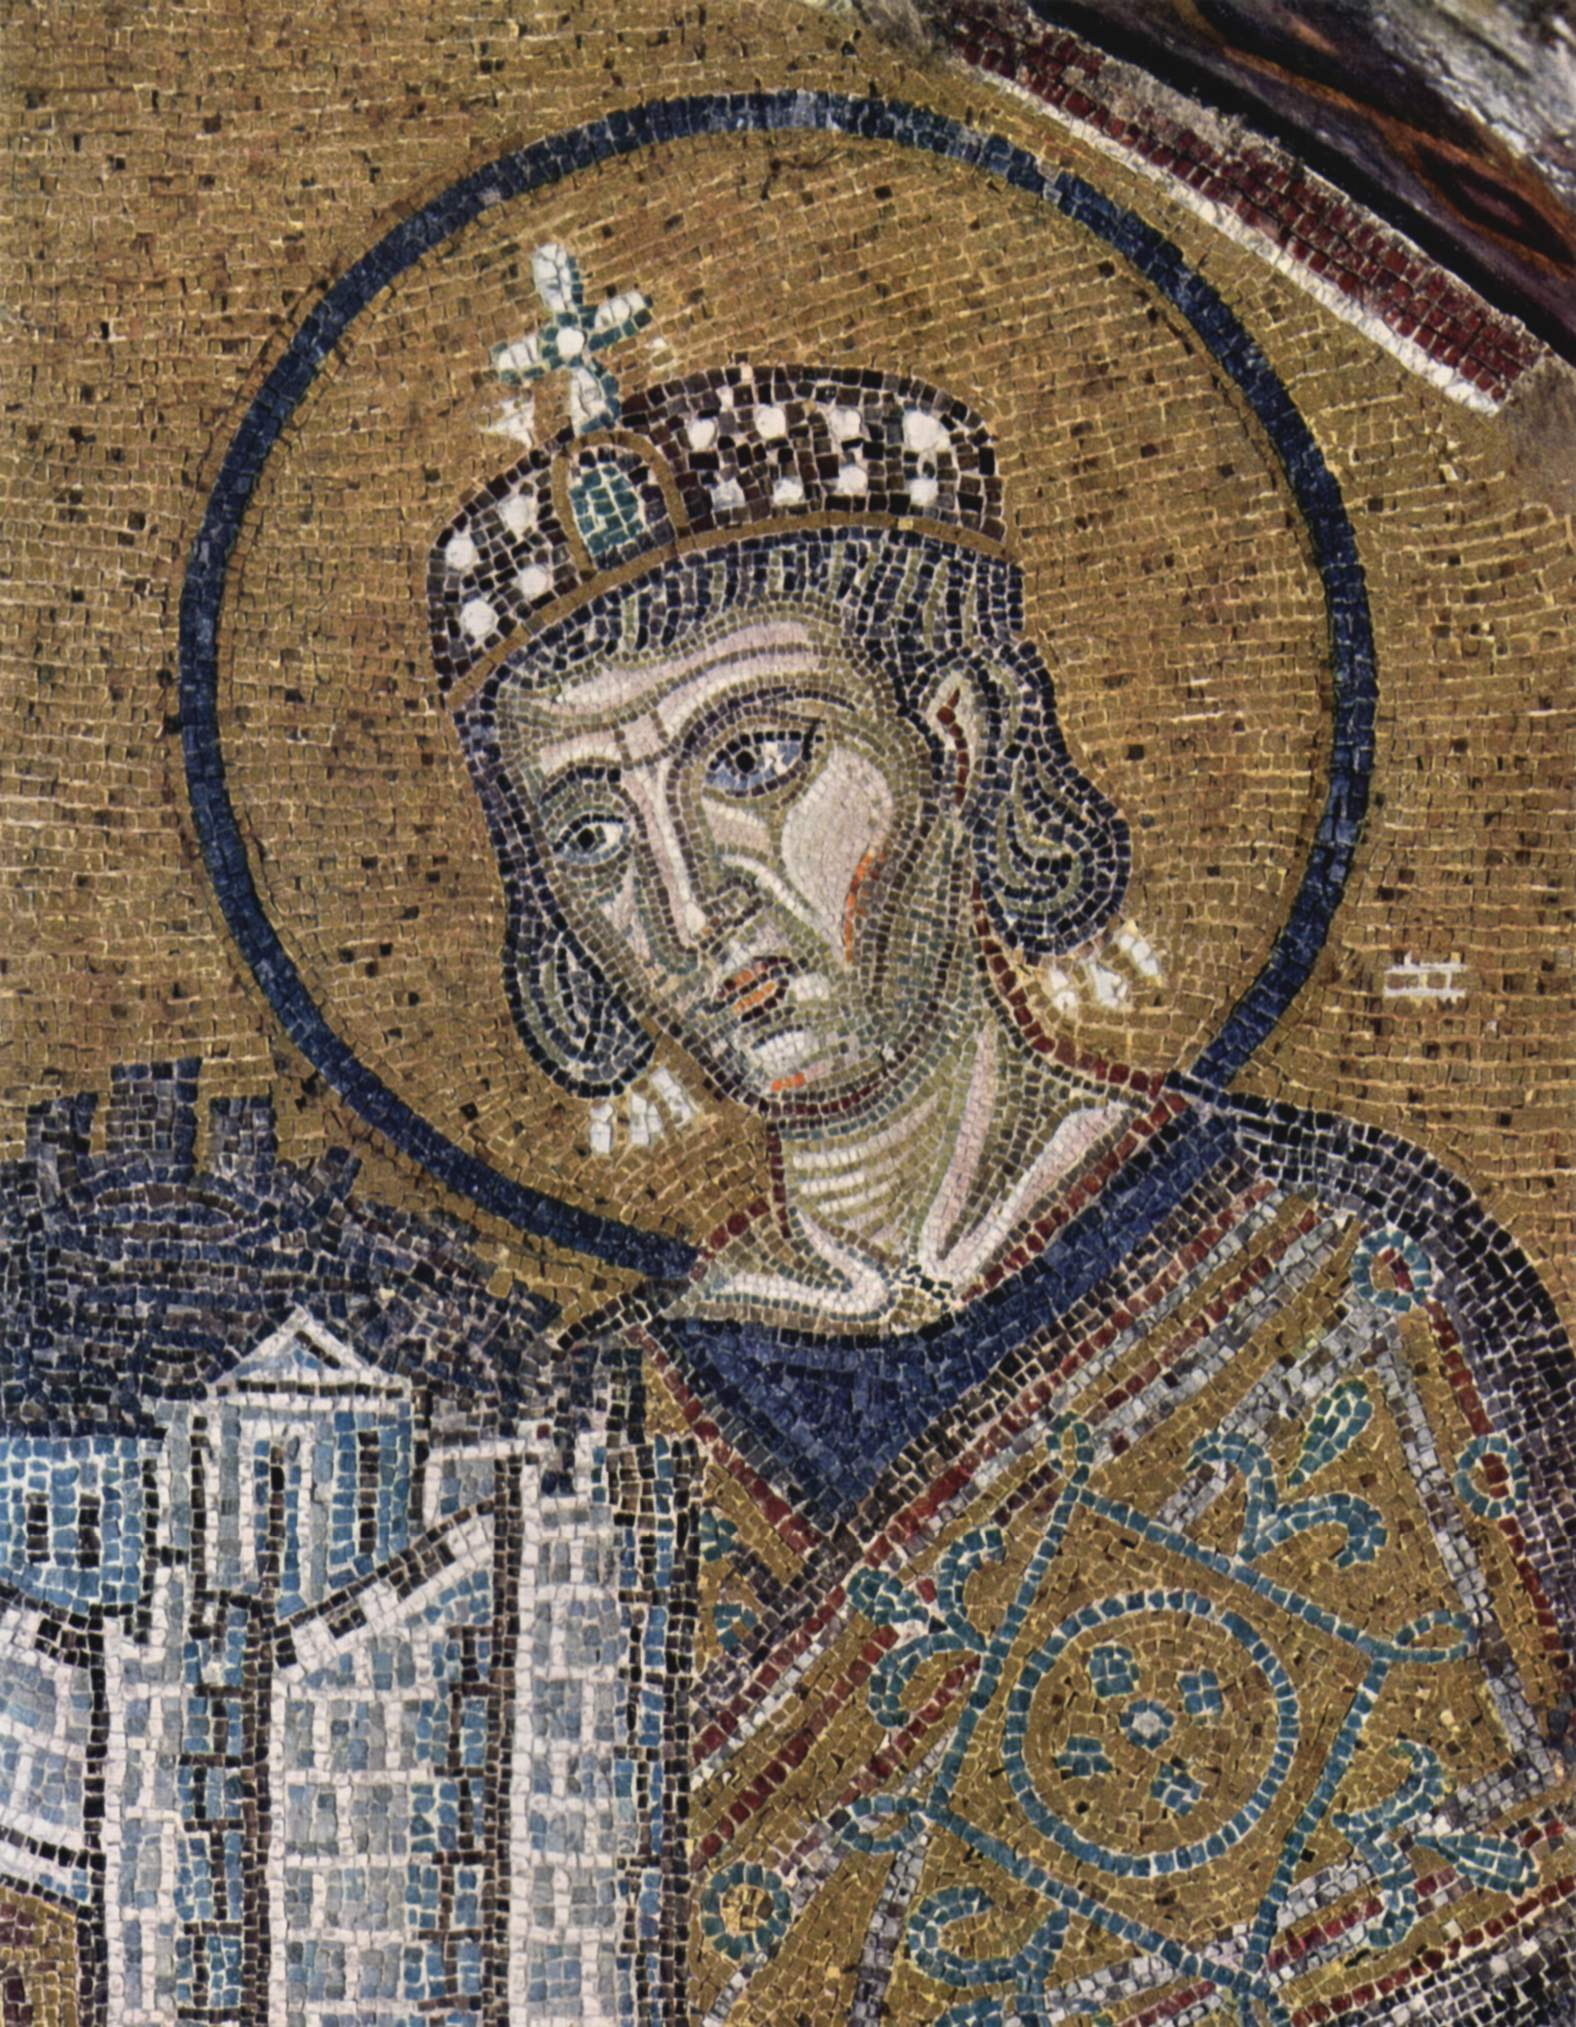 https://upload.wikimedia.org/wikipedia/commons/3/3e/Byzantinischer_Mosaizist_um_1000_002.jpg